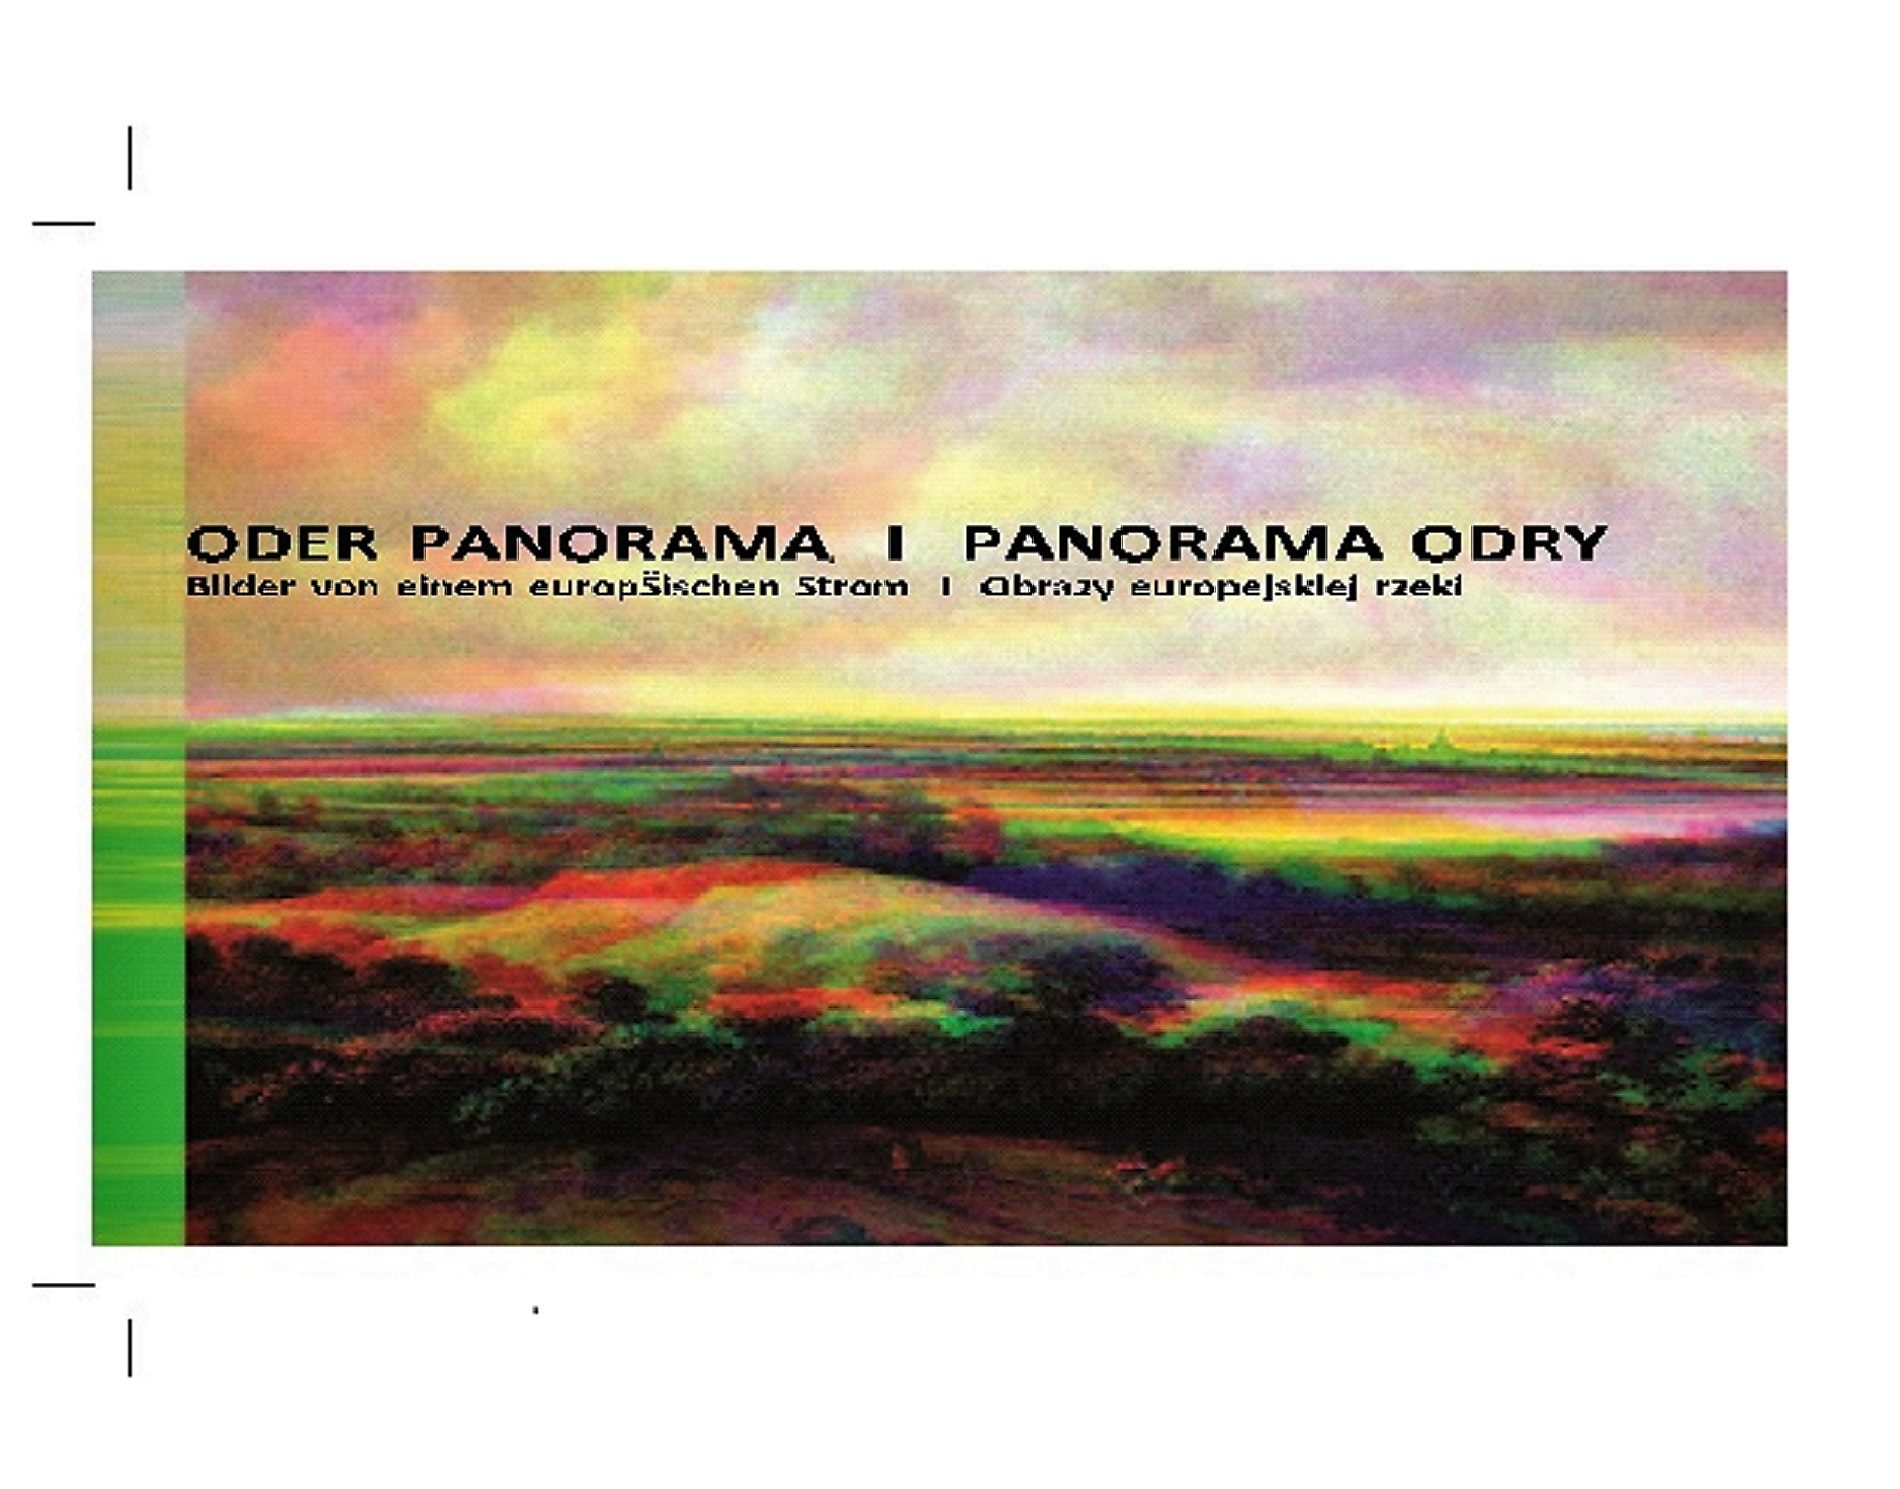 An Exibition <br/>Oder-Panorama I Panorama Odry